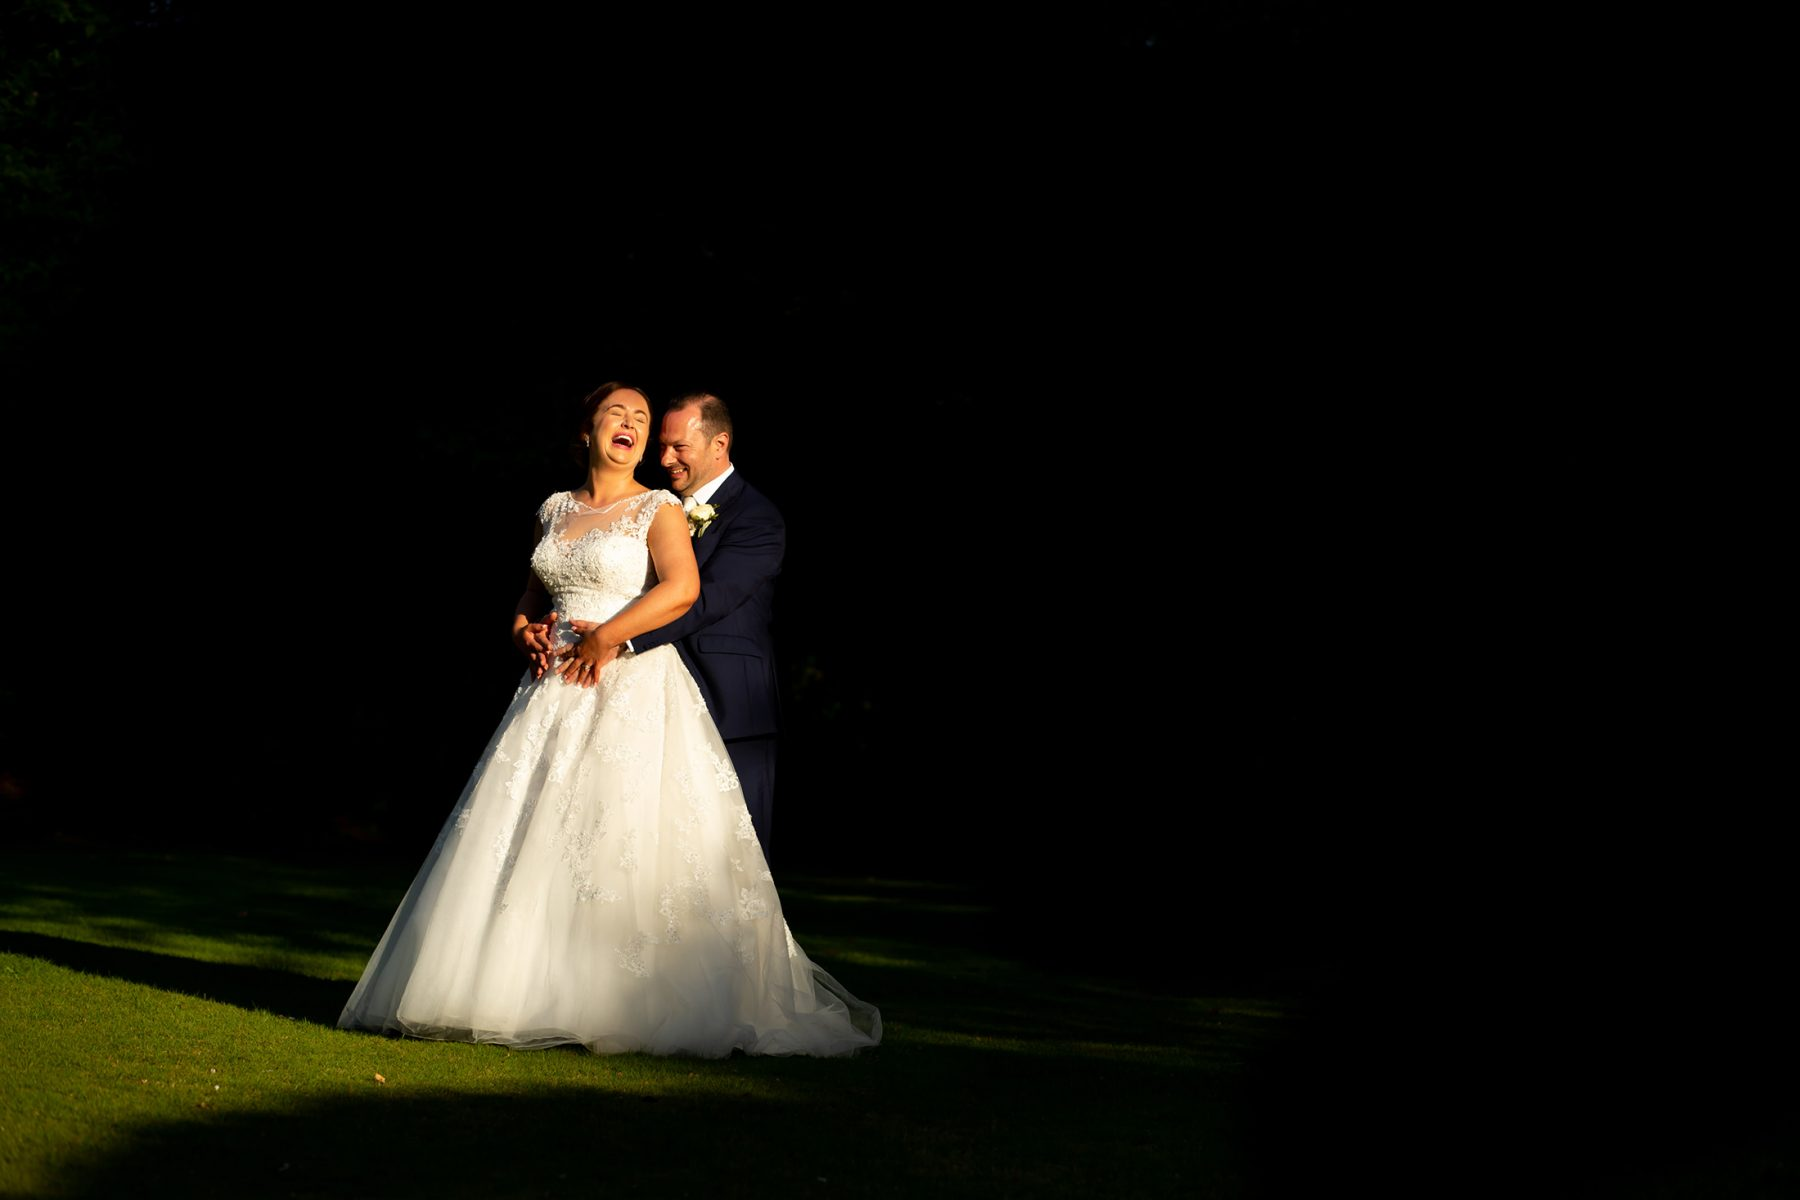 The bride and groom laugh in evening sunlight at the Mere Court Hotel, one of a number of Knutsford Wedding Venues